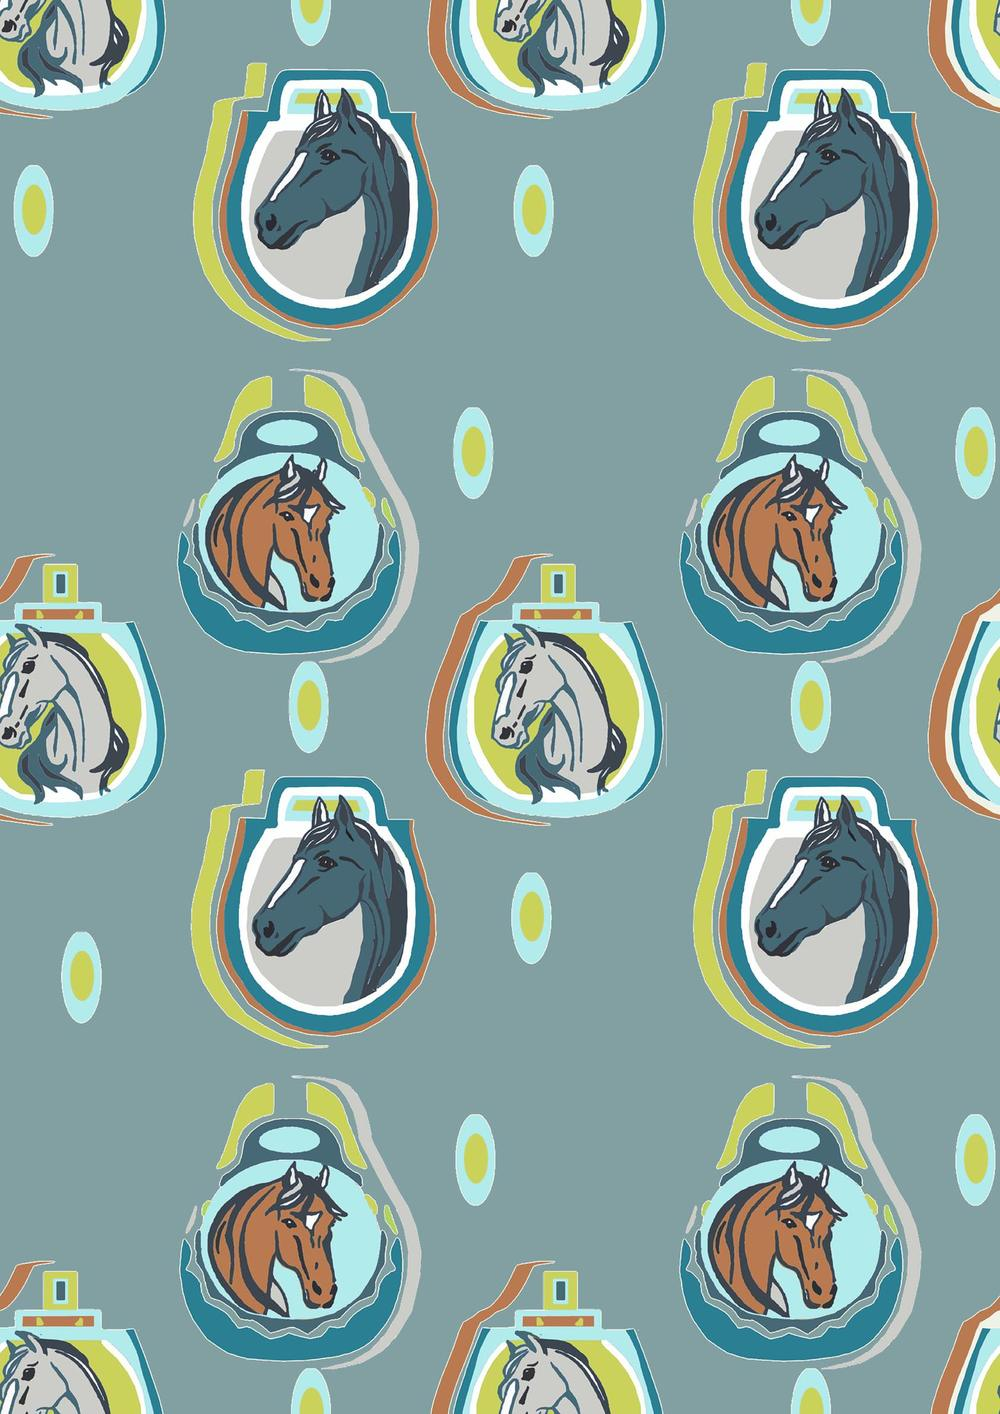 retro horses design teal.jpg